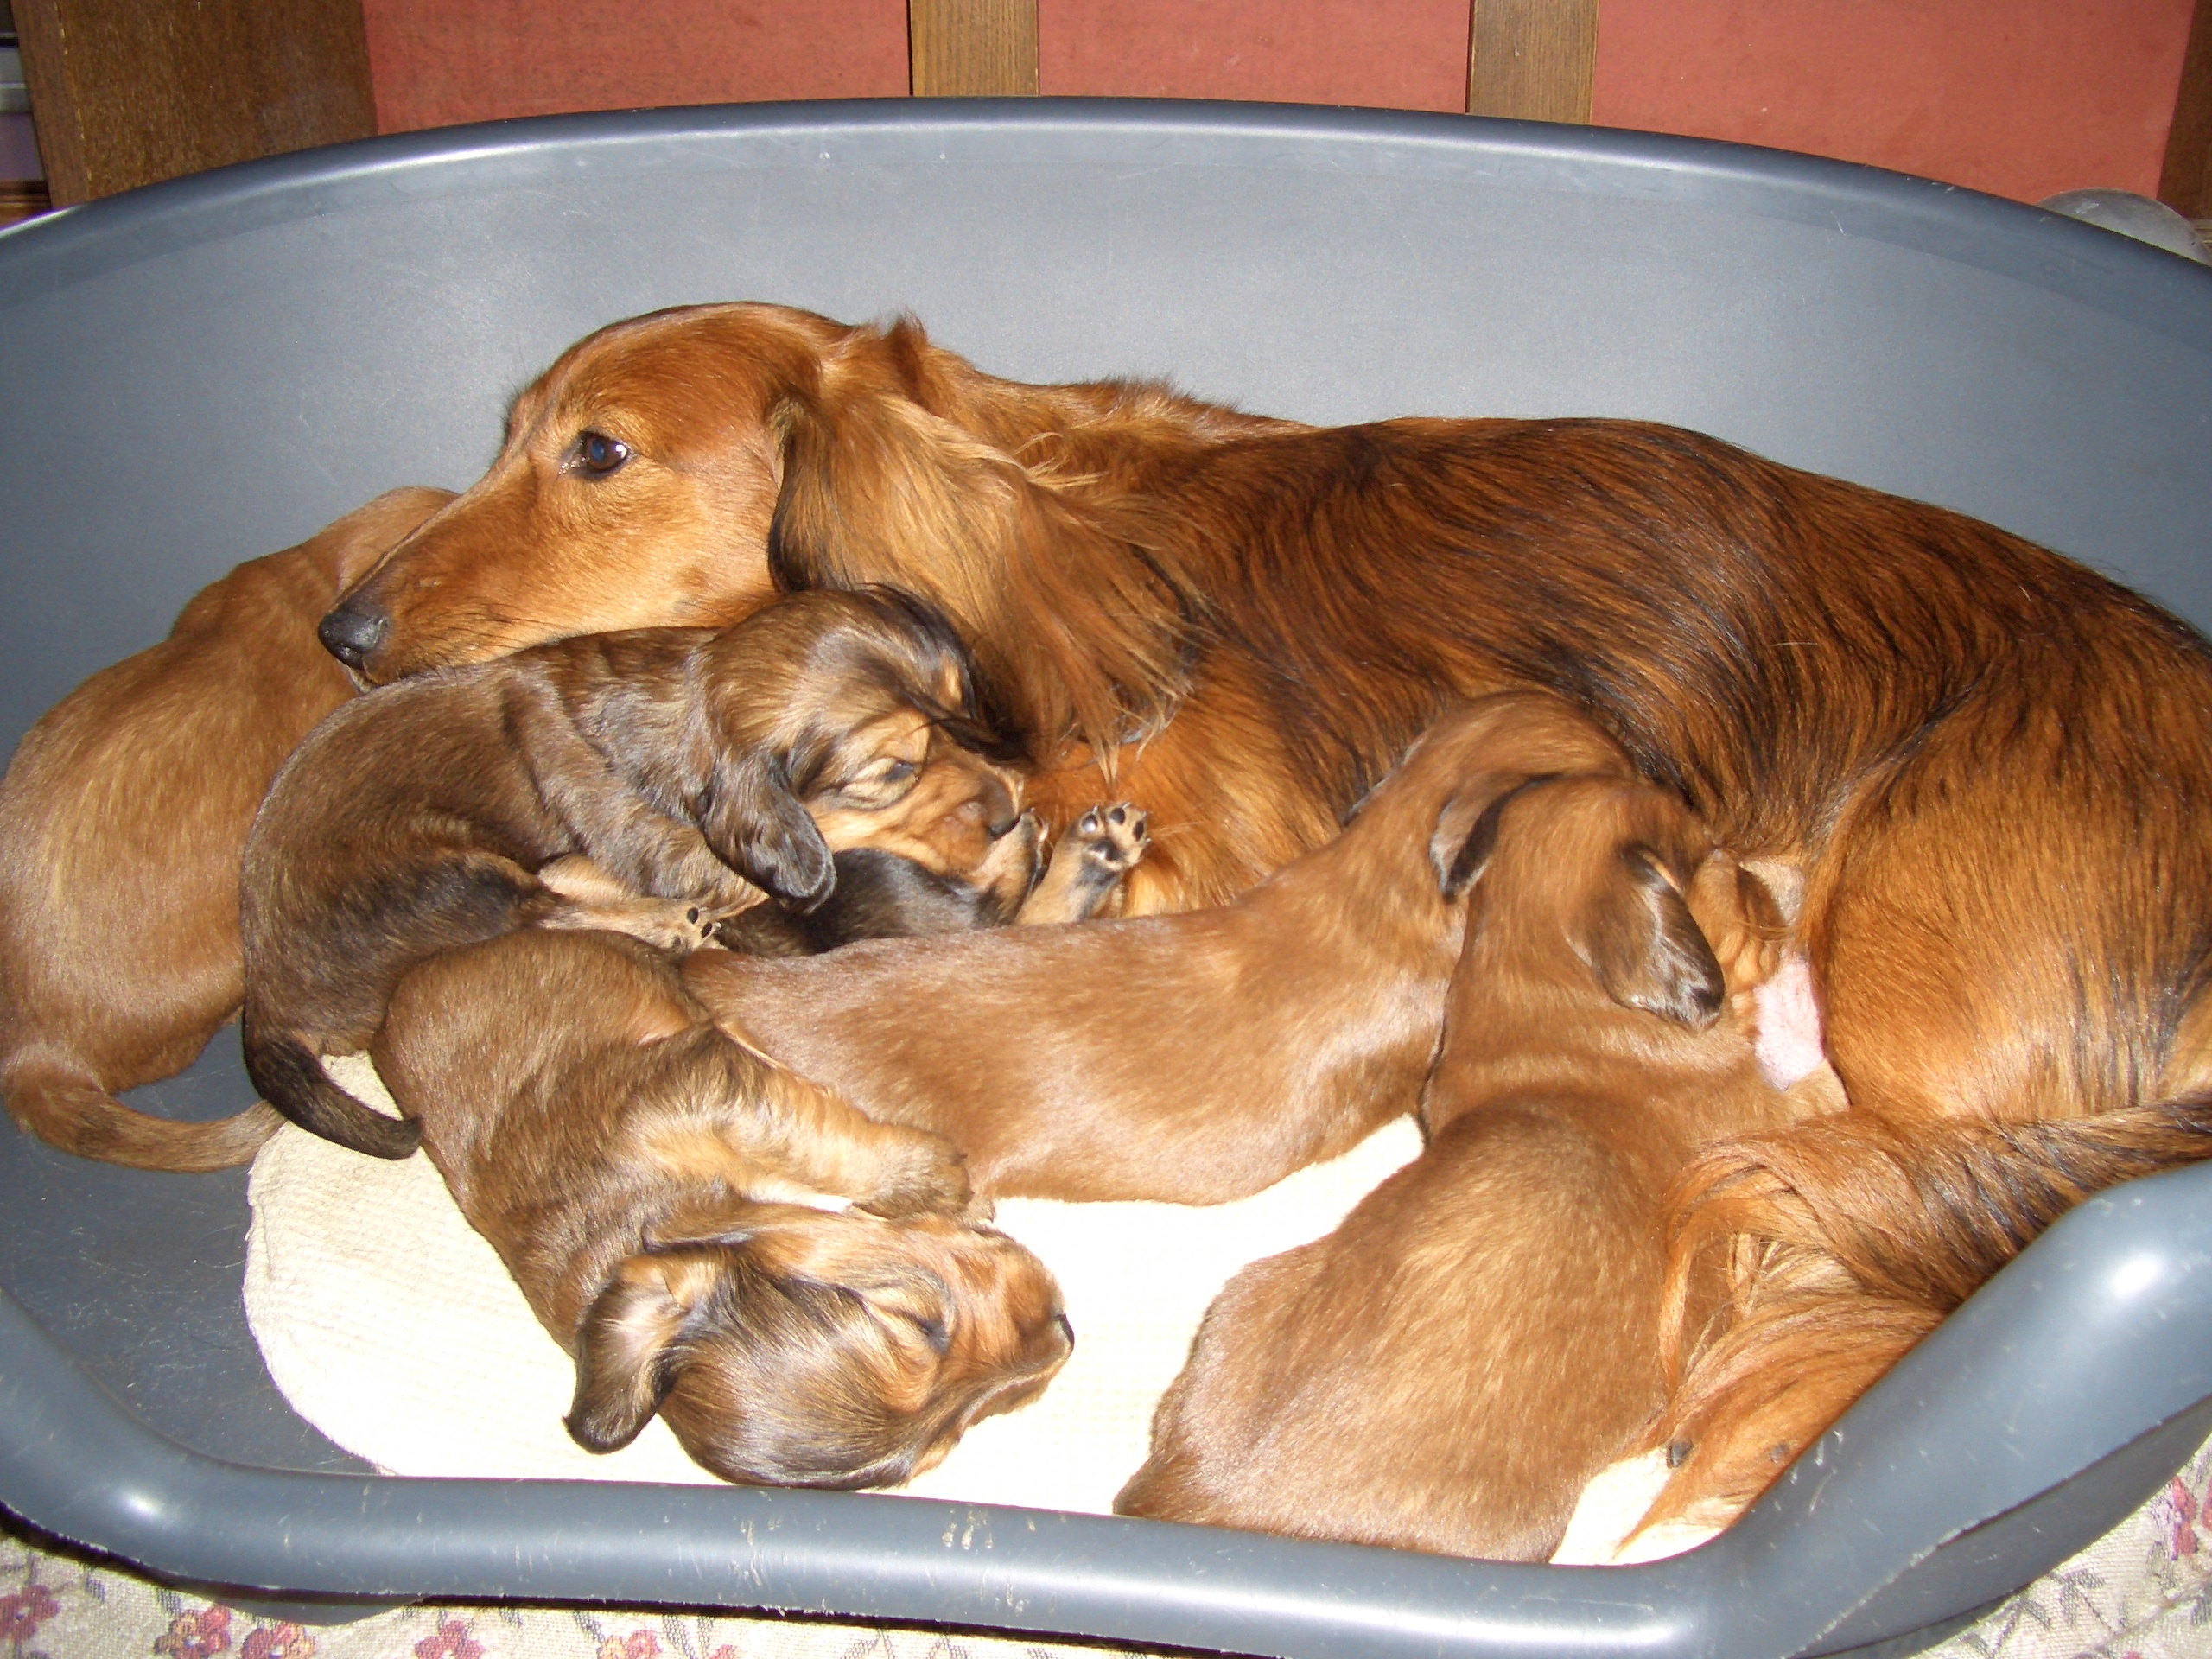 File:Dachshund puppies.jpg - Wikipedia, the free encyclopedia